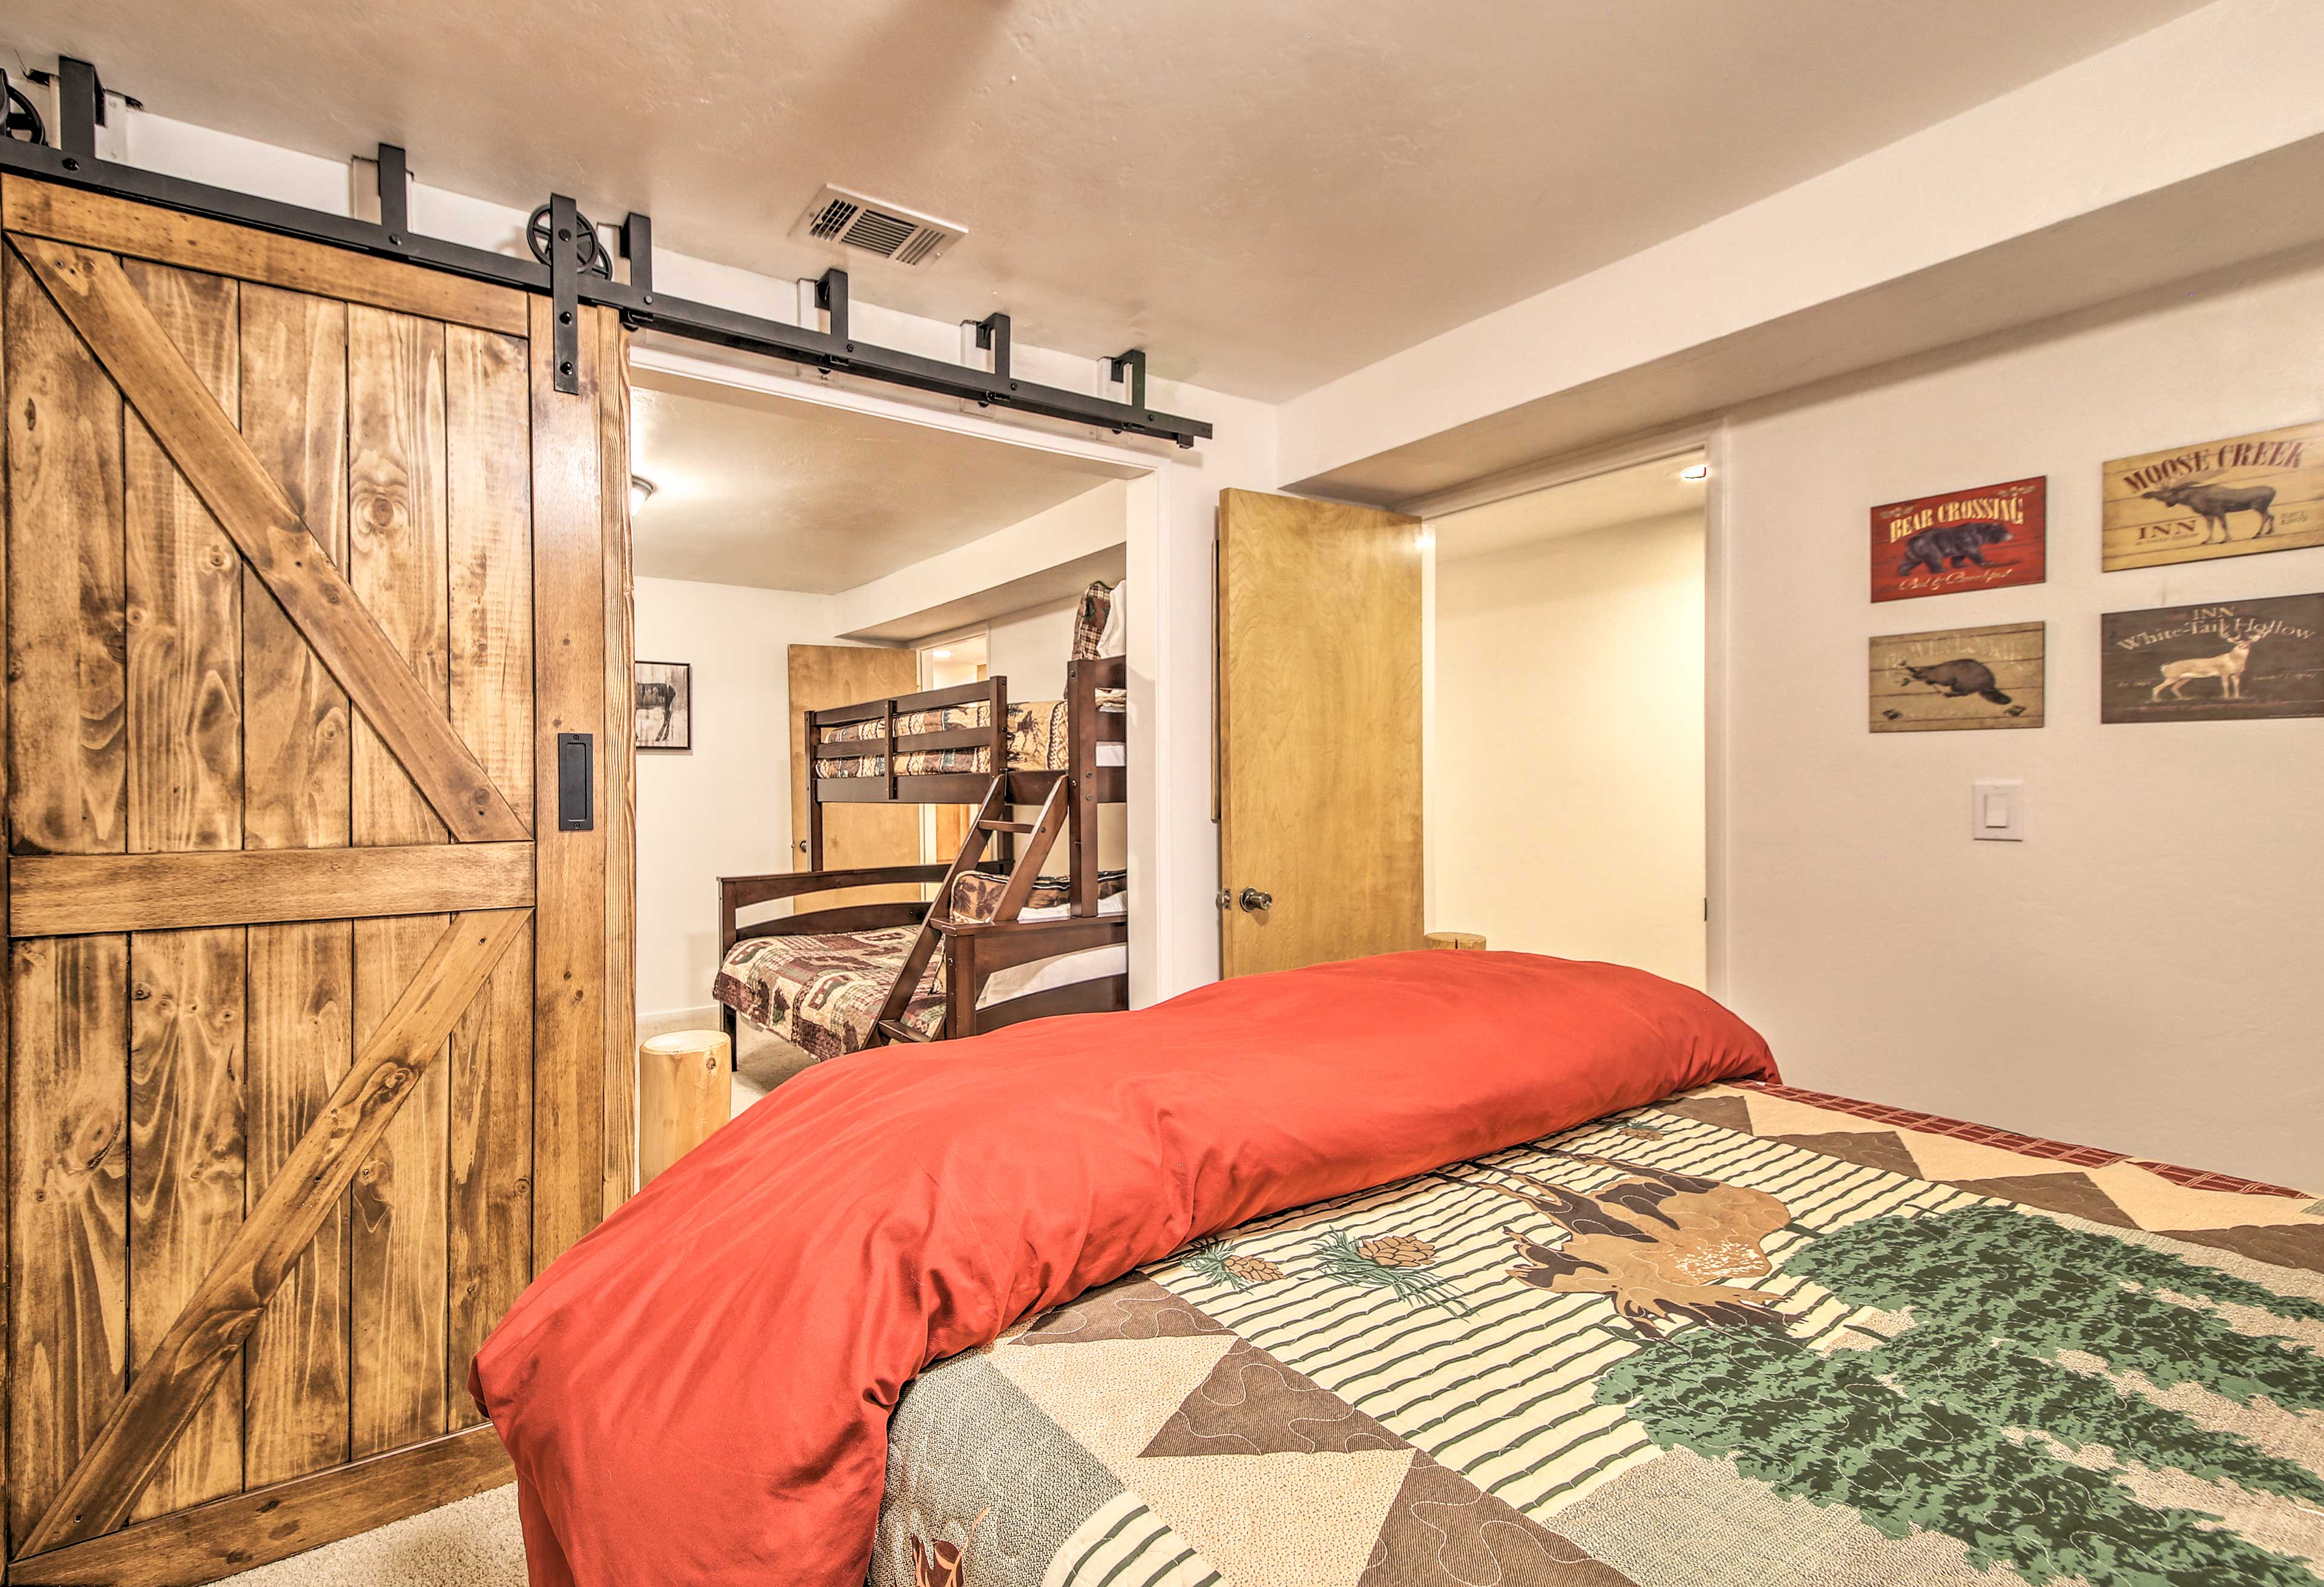 The barn doors slide open to connect this bedroom with the bunk room.